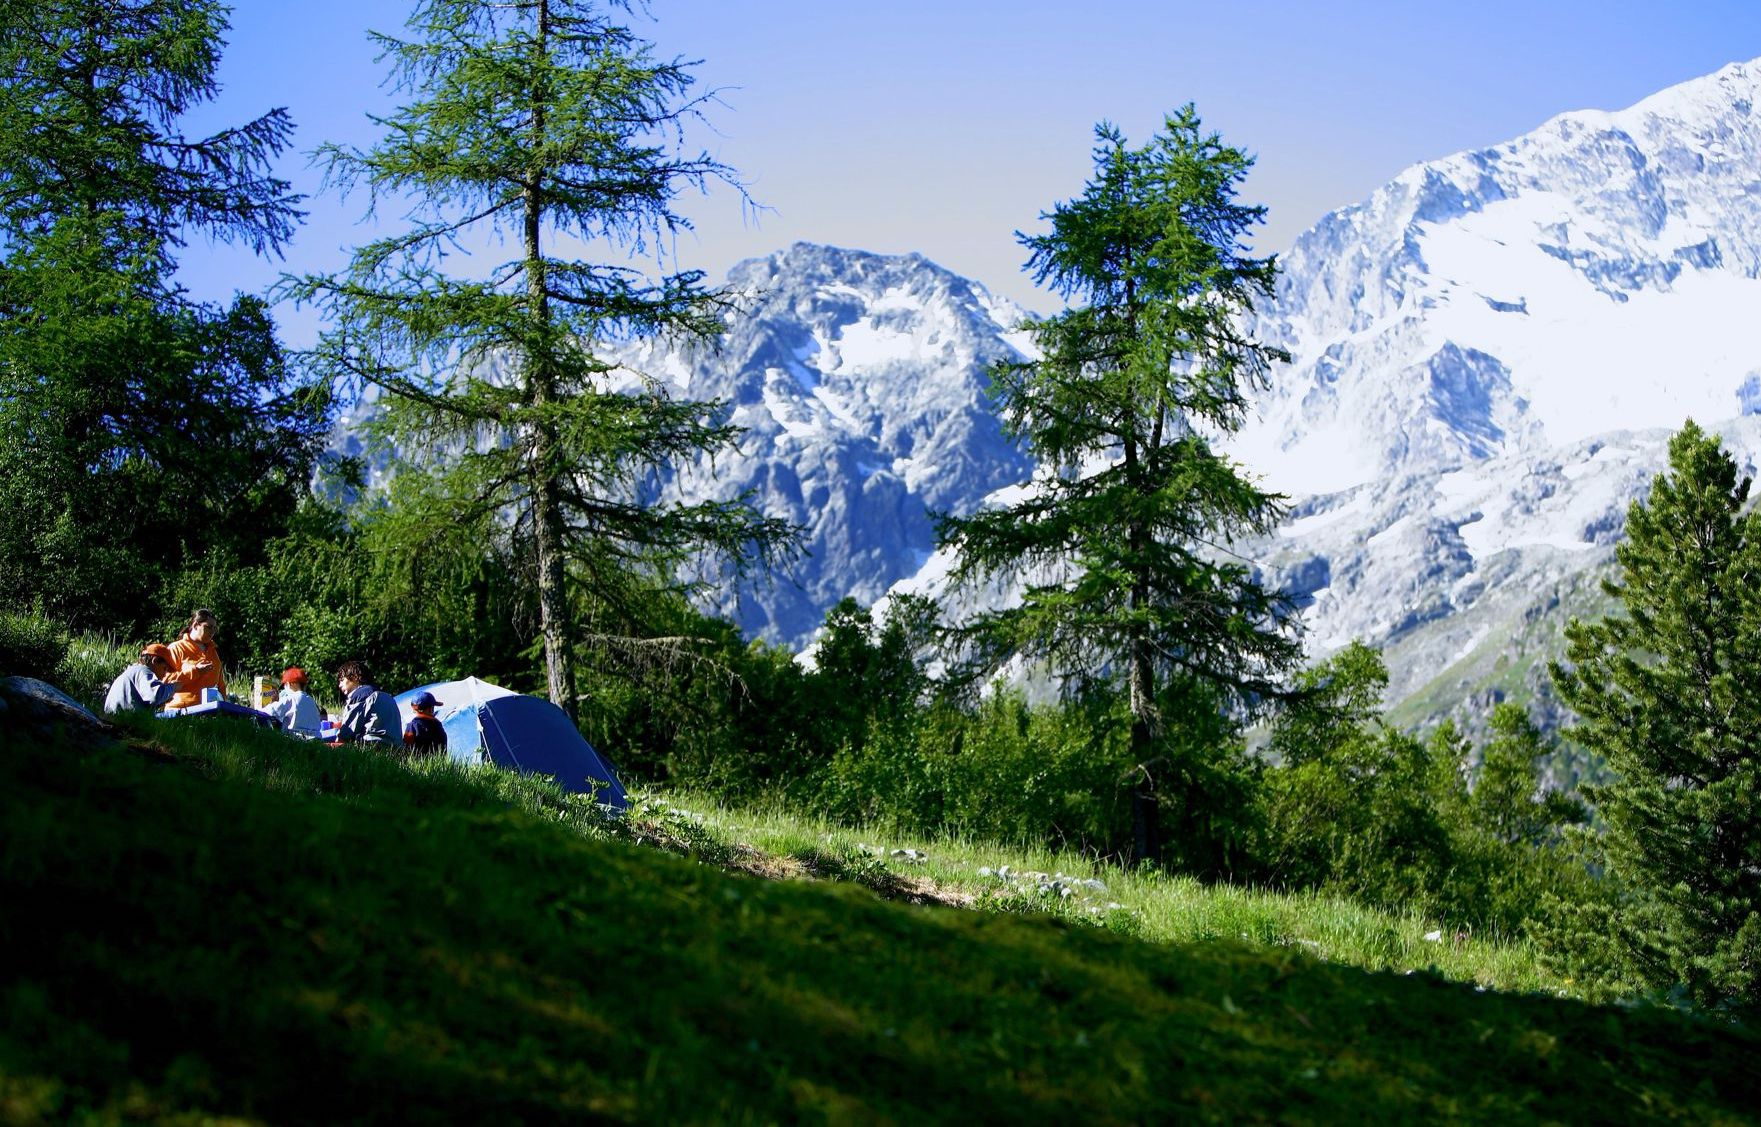 Campsites in the Alps – Mountain Campsites in the Alps